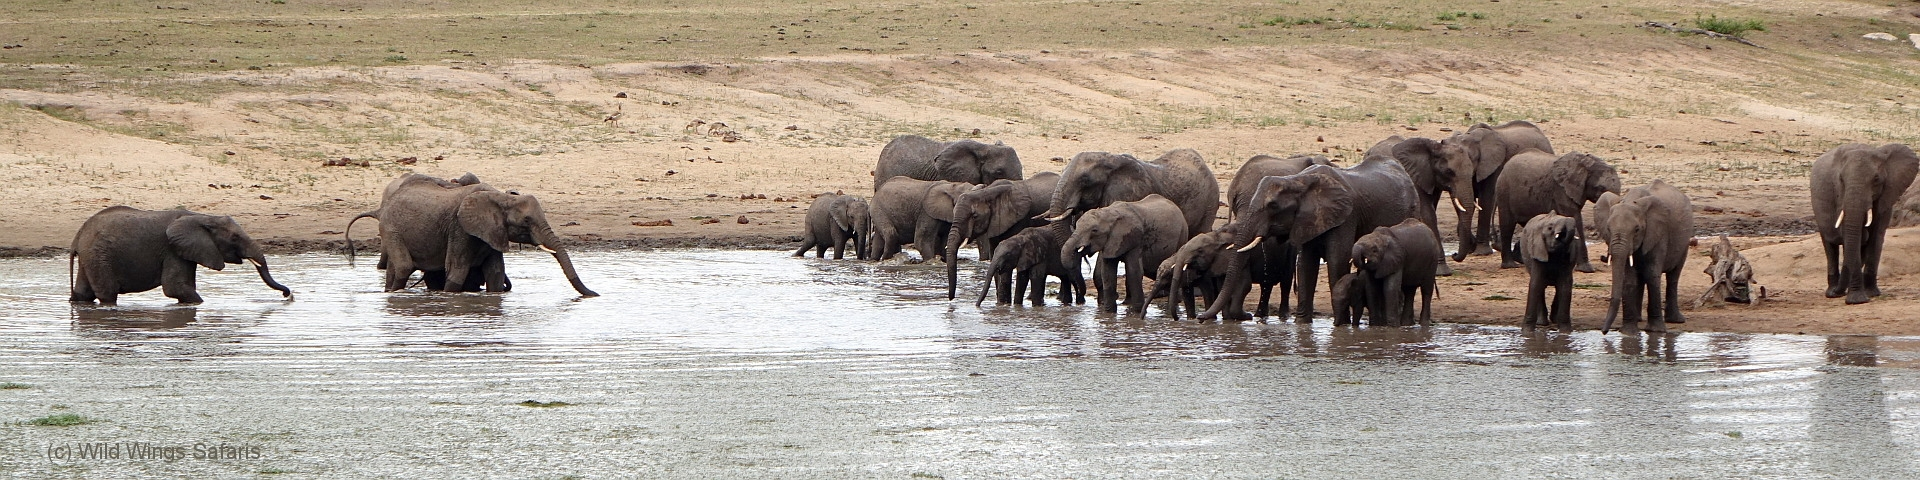 Aberdare National Park Elephants at Waterhole